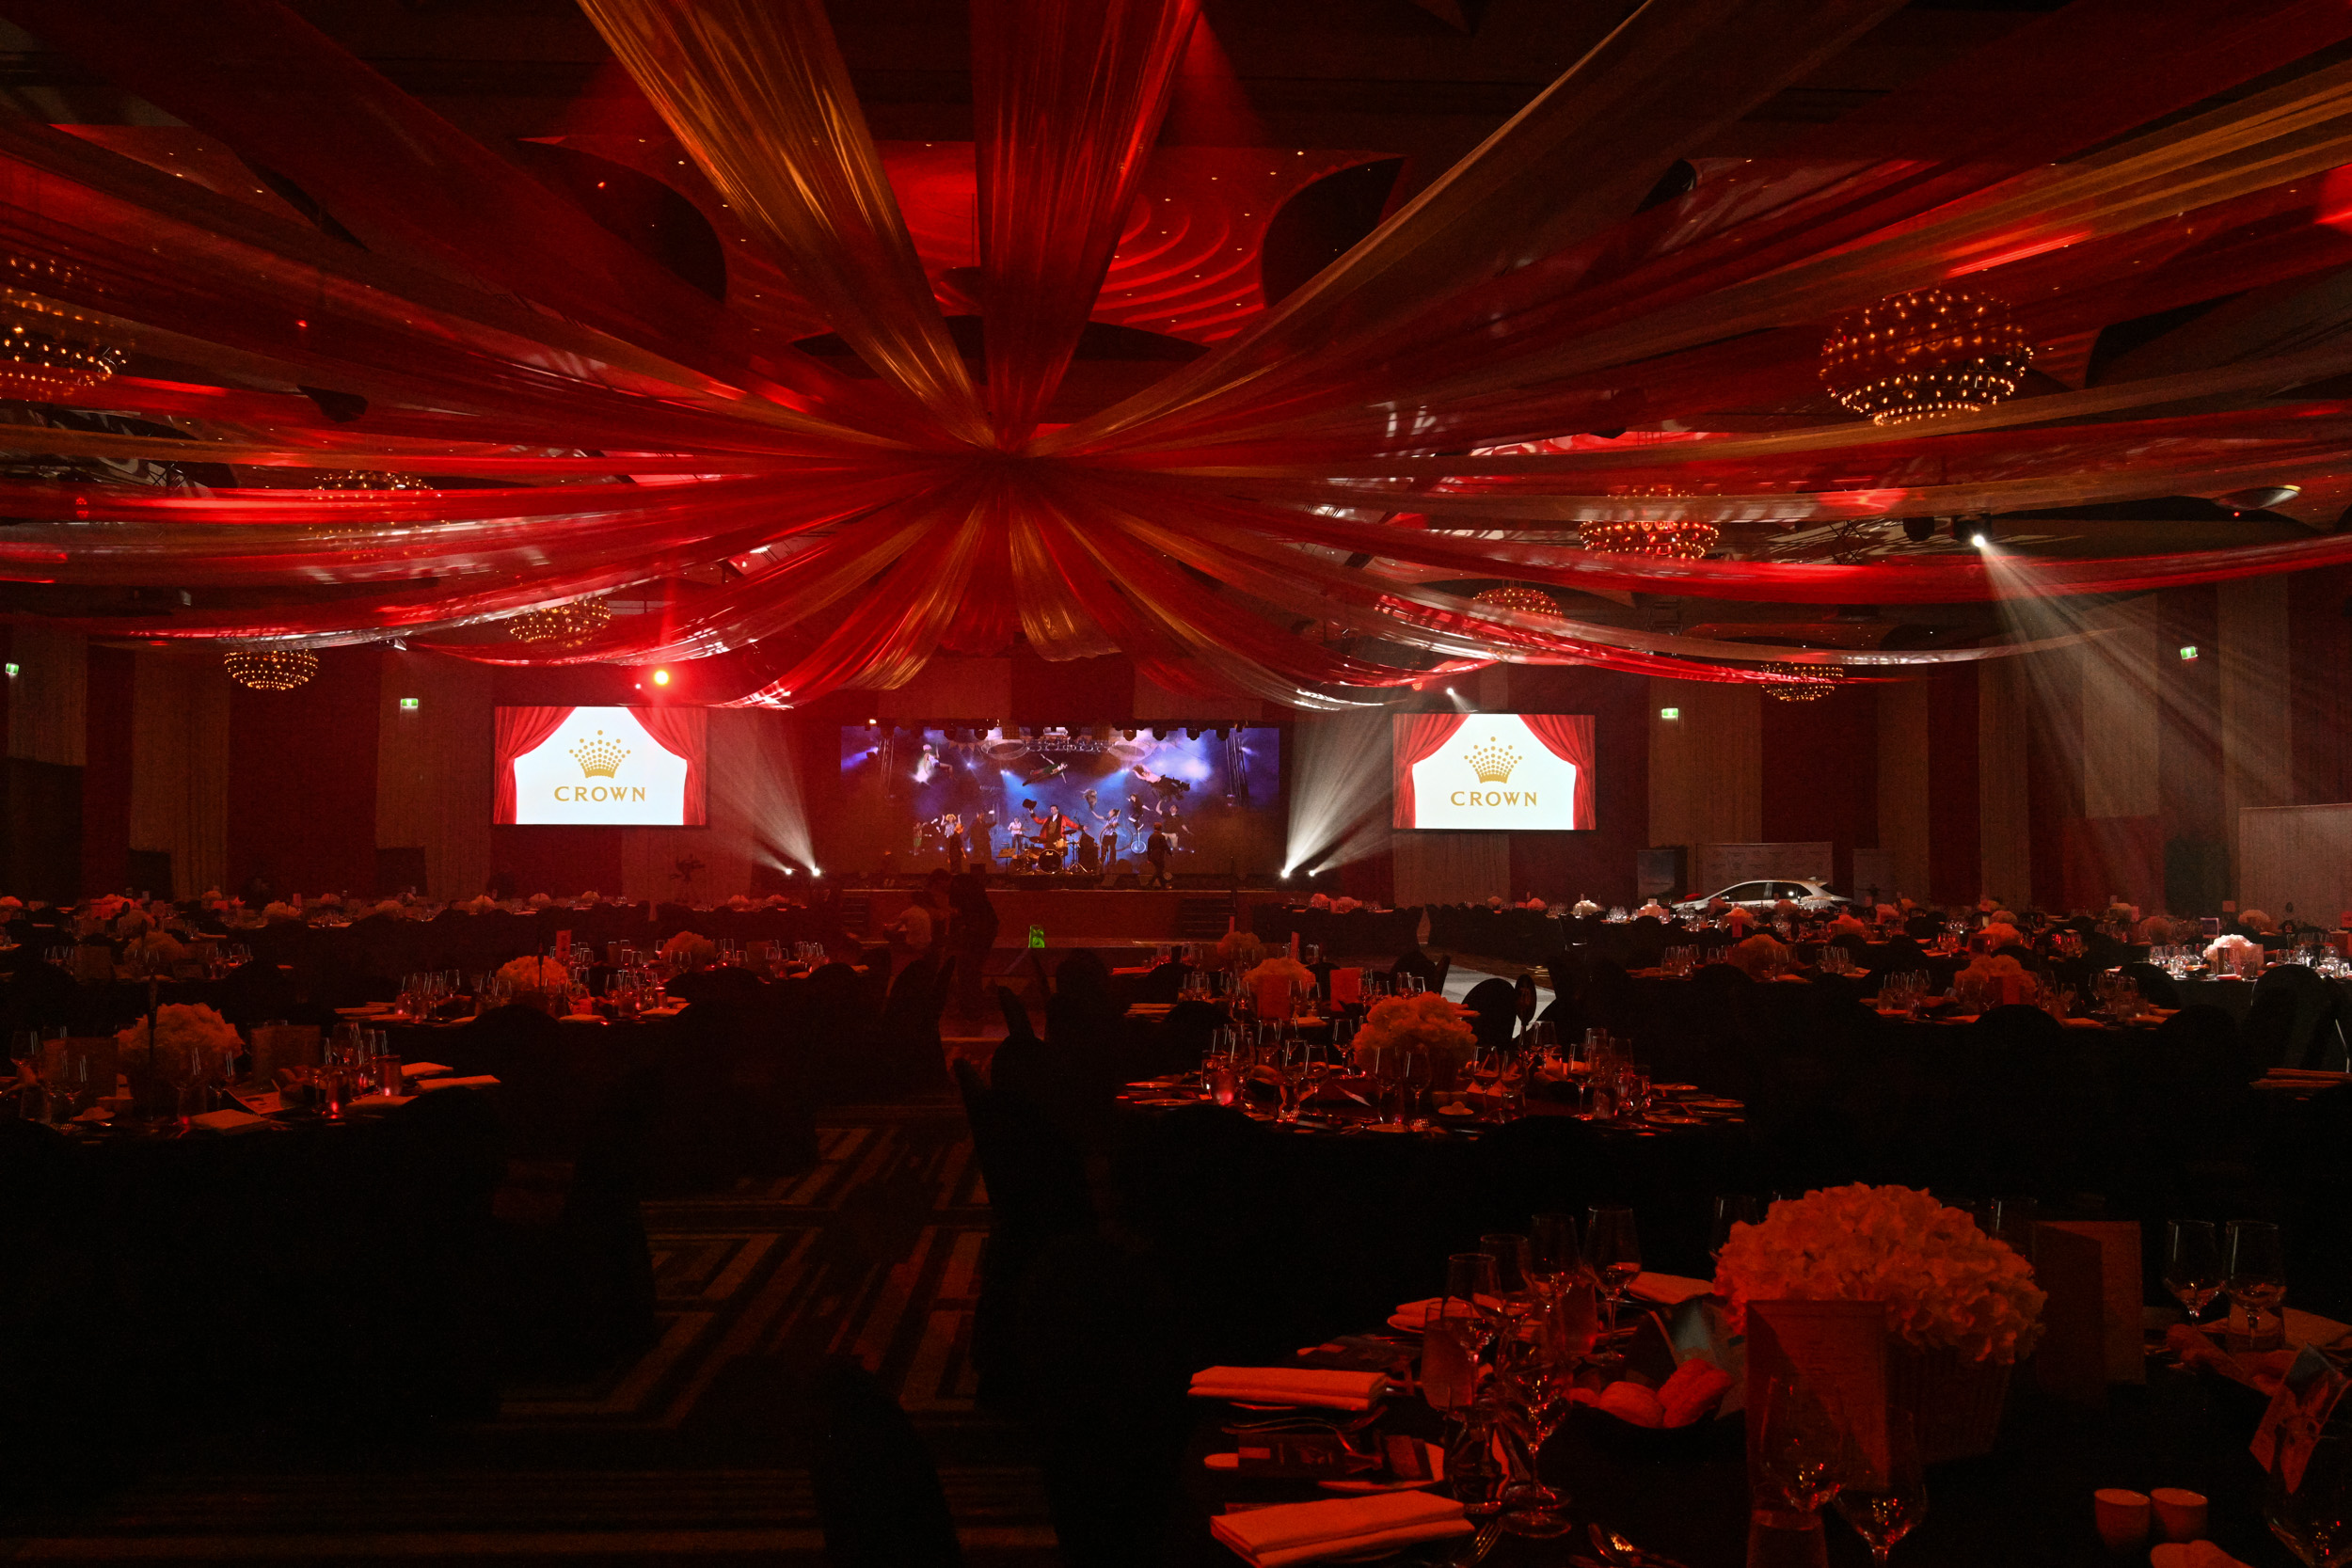 Inside the ballroom for the 2019 Dandelion Wishes Gala